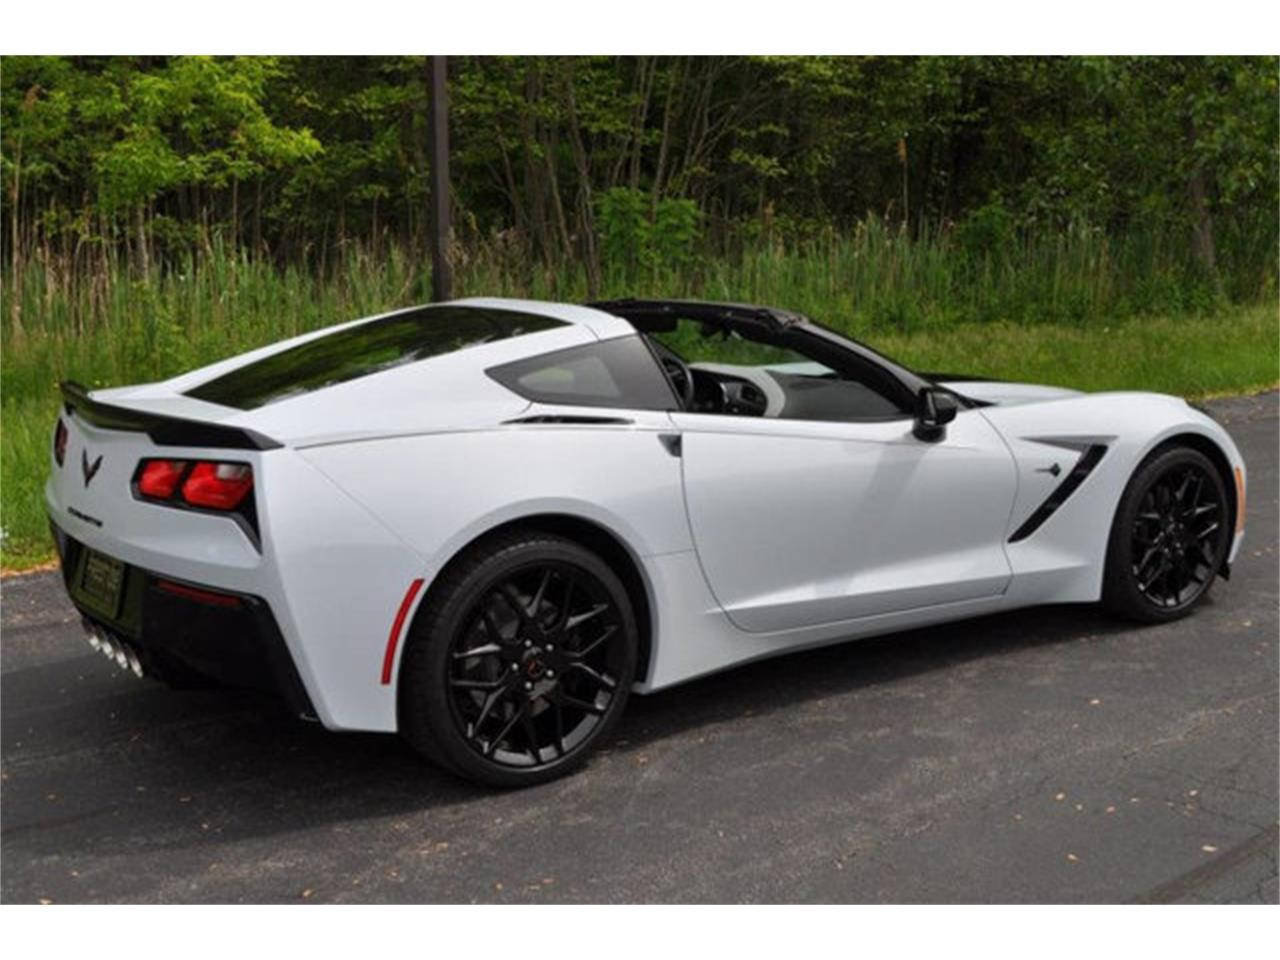 Large Picture of 2018 Chevrolet Corvette located in Clifton Park New York - $58,999.00 - QDOE